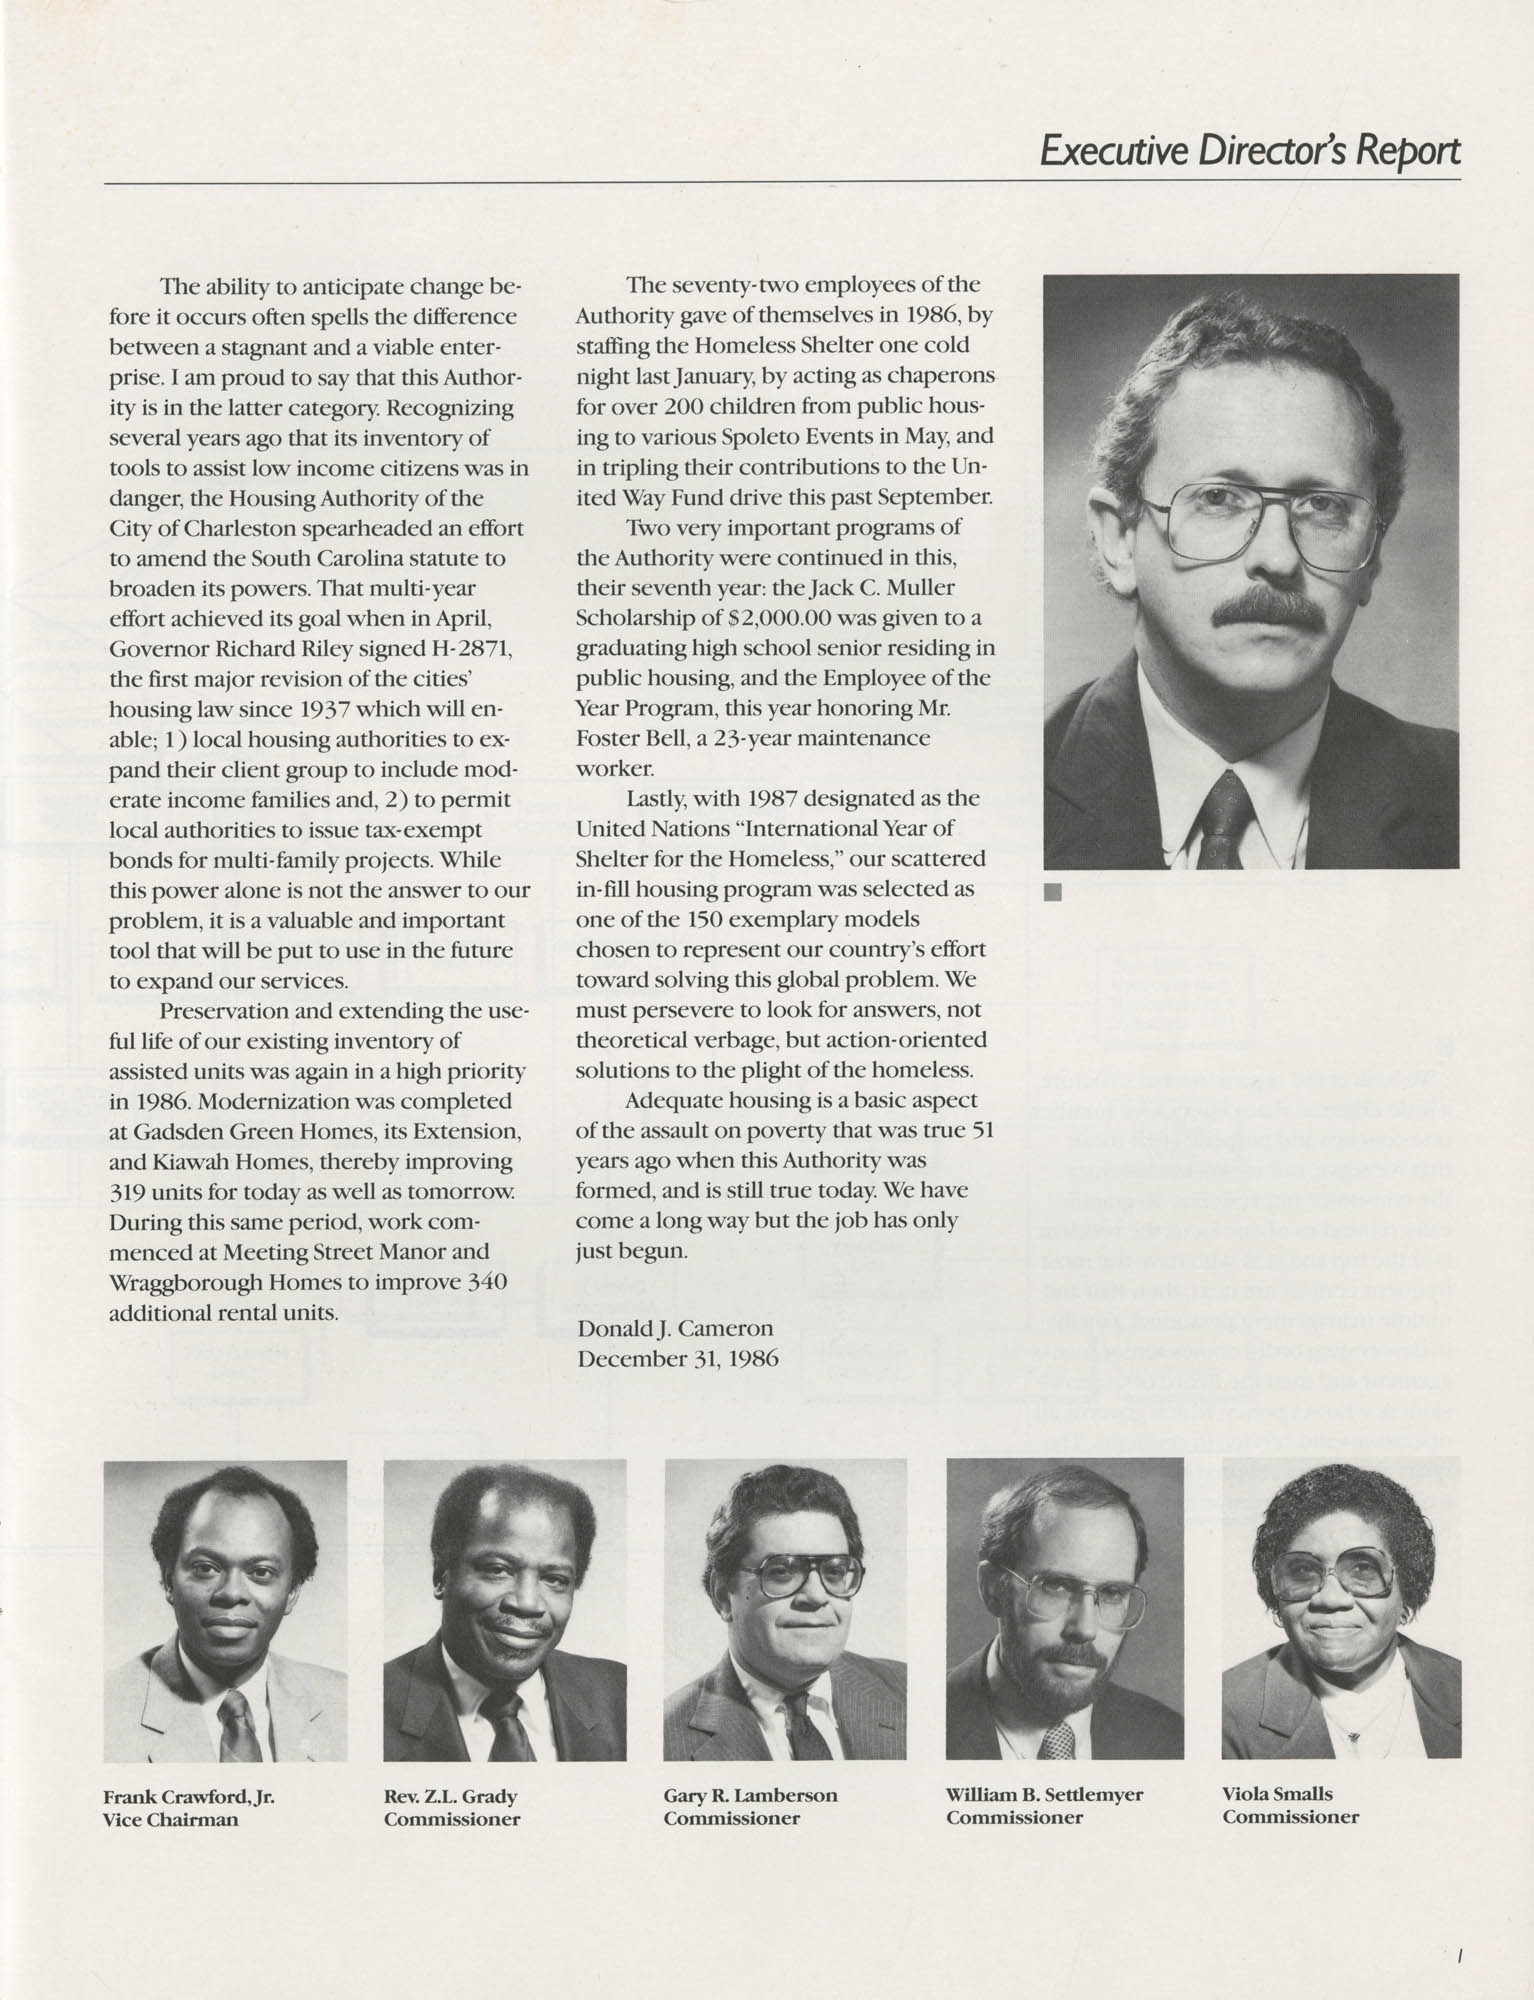 1986 Annual Report, The Housing Authority of the City of Charleston, Page 1